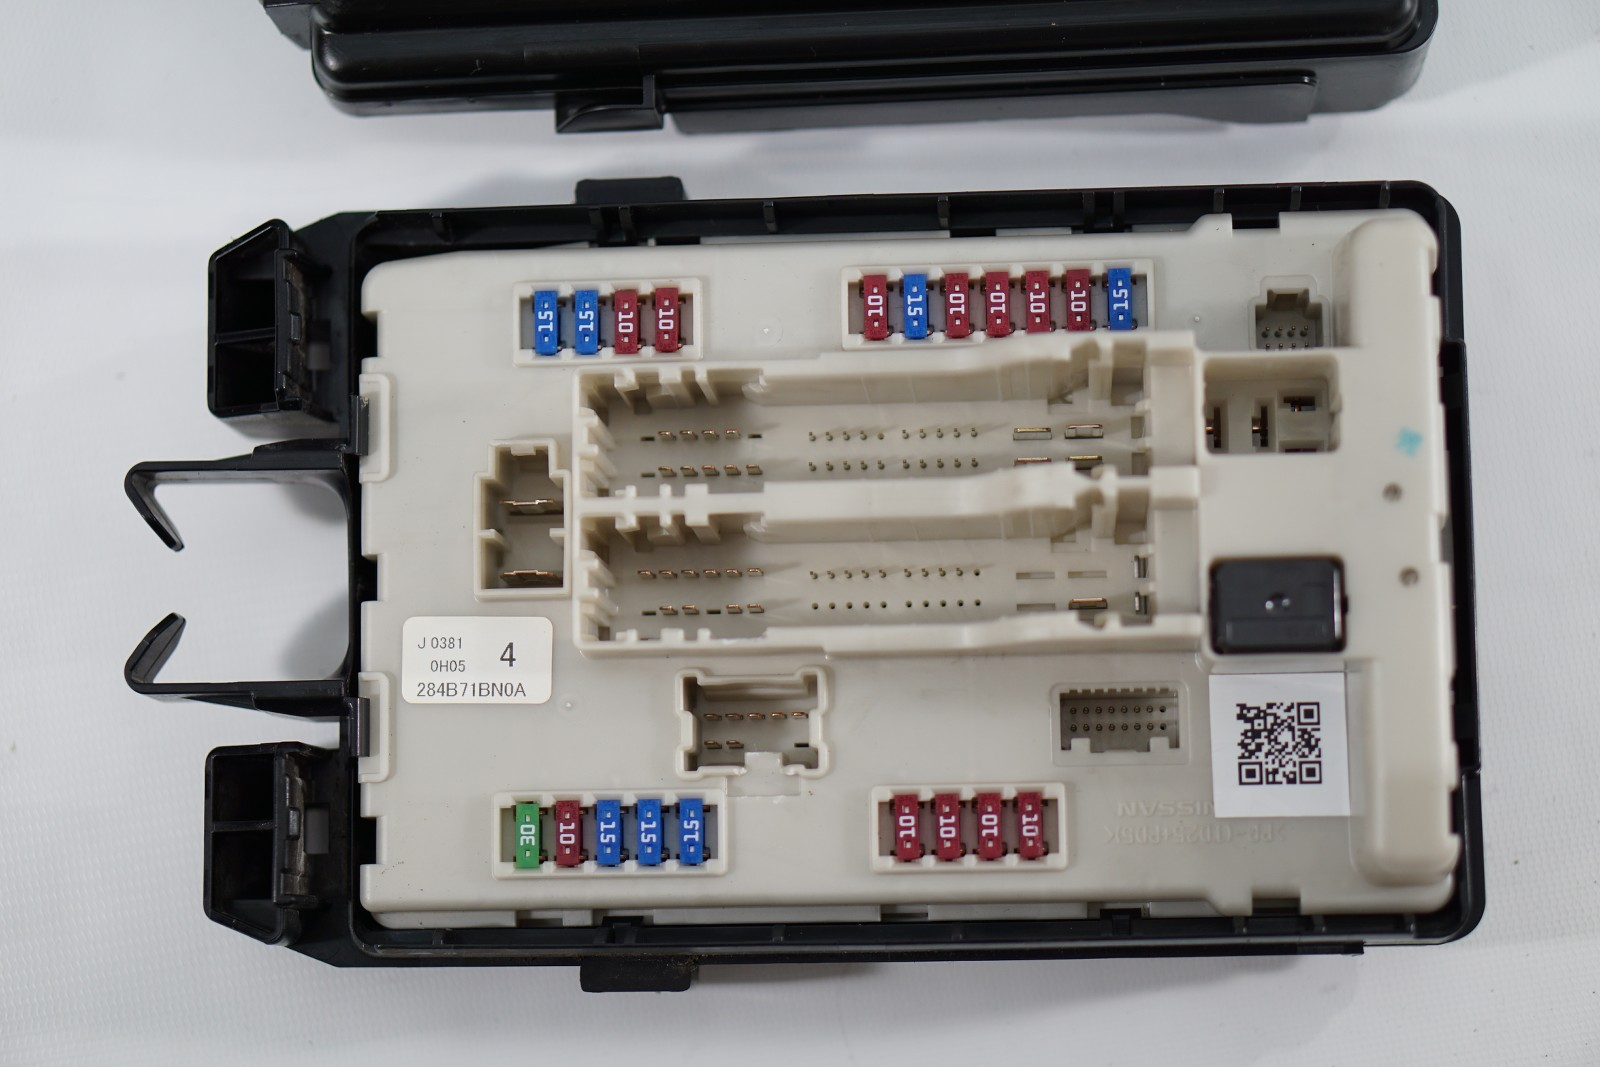 Infiniti M37 Fuse Box Location Wiring Library Swift Caravan 2009 2012 G25 G37 Ex35 Nissan 370z Relay